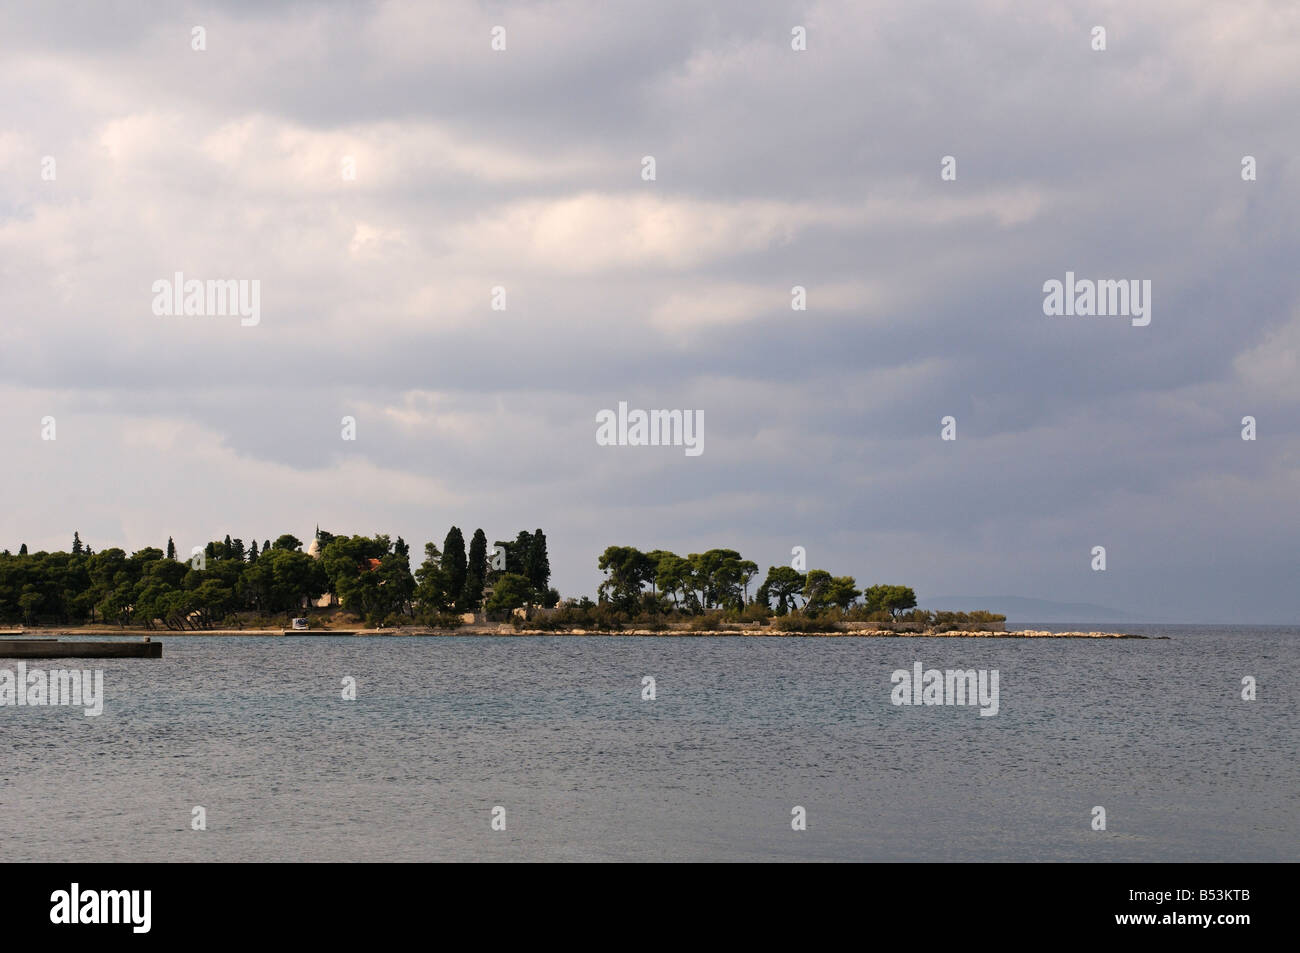 Evergreen trees on the beach in Supetar on the island of Brac Dalmatia Croatia - Stock Image